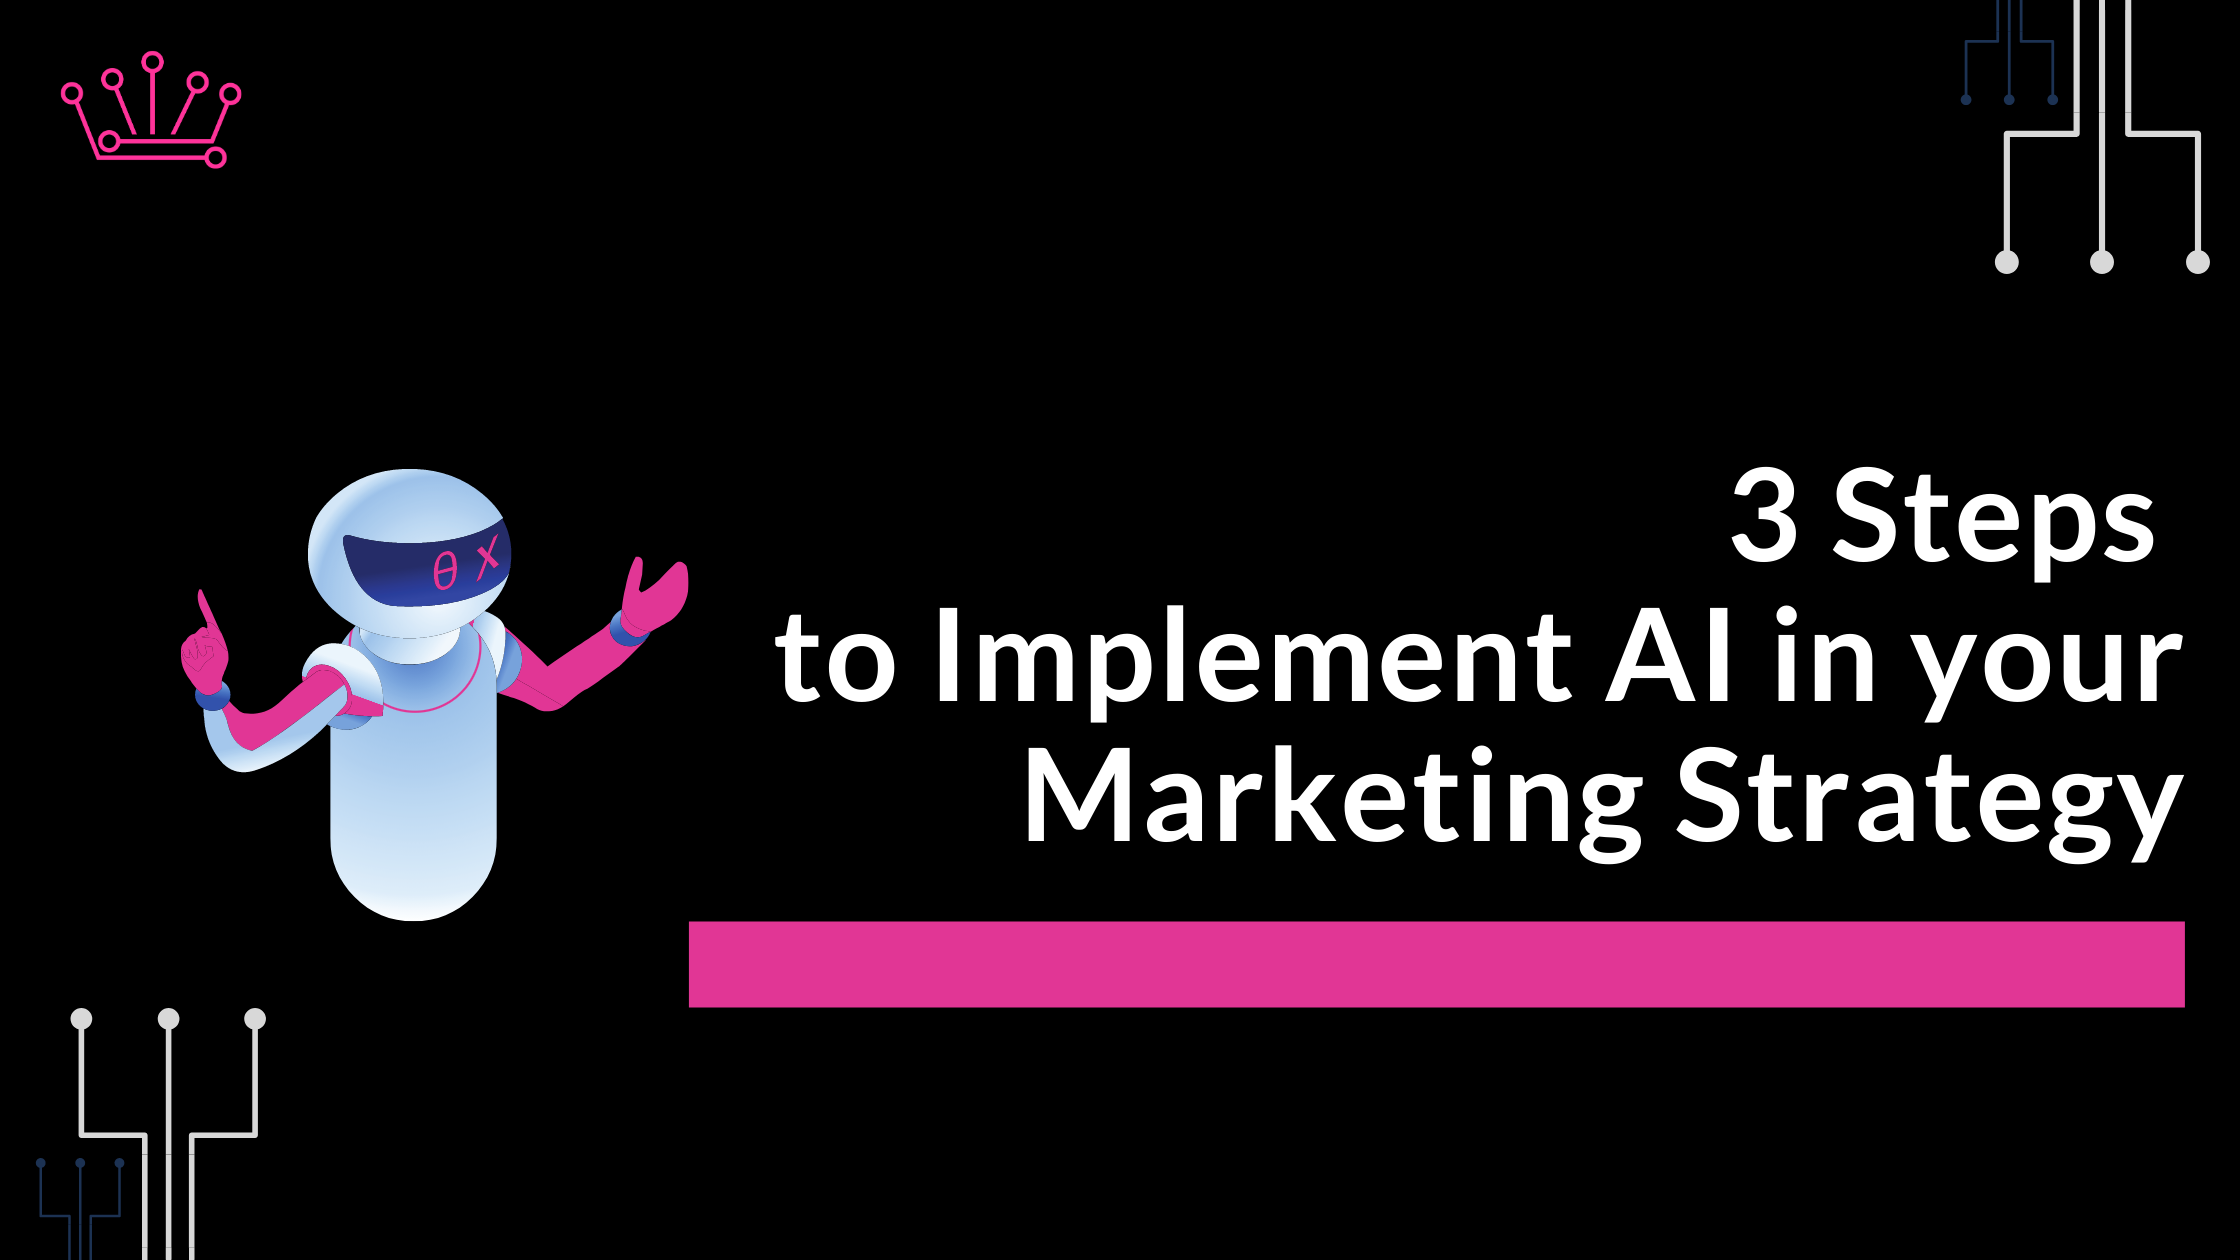 3 Steps To Implement Artificial Intelligence In Your Marketing Strategy